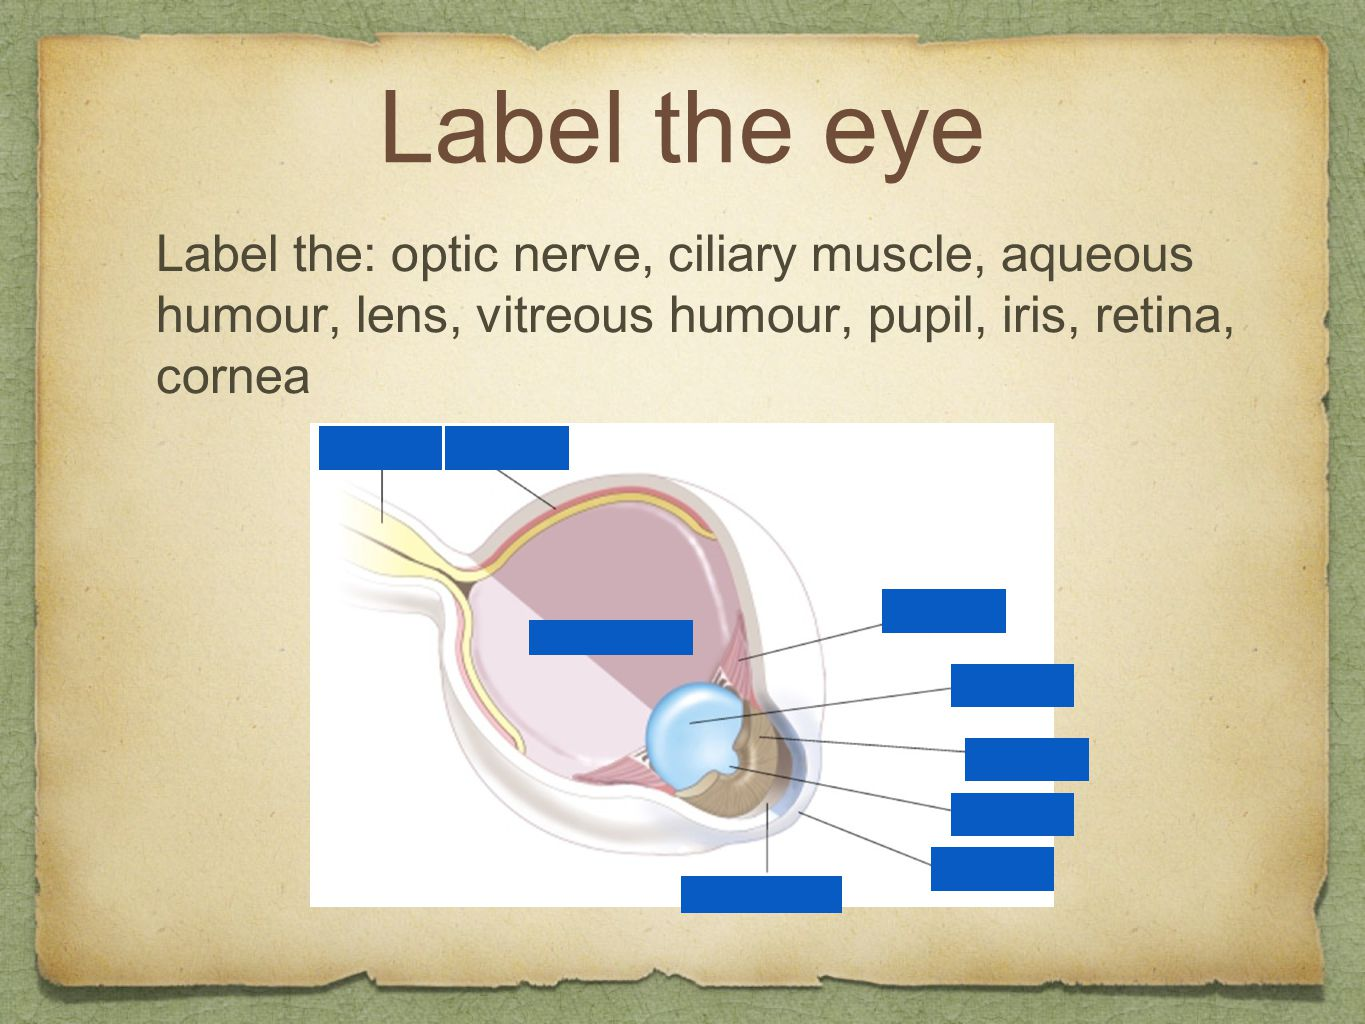 Label the eye Label the: optic nerve, ciliary muscle, aqueous humour, lens, vitreous humour, pupil, iris, retina, cornea.